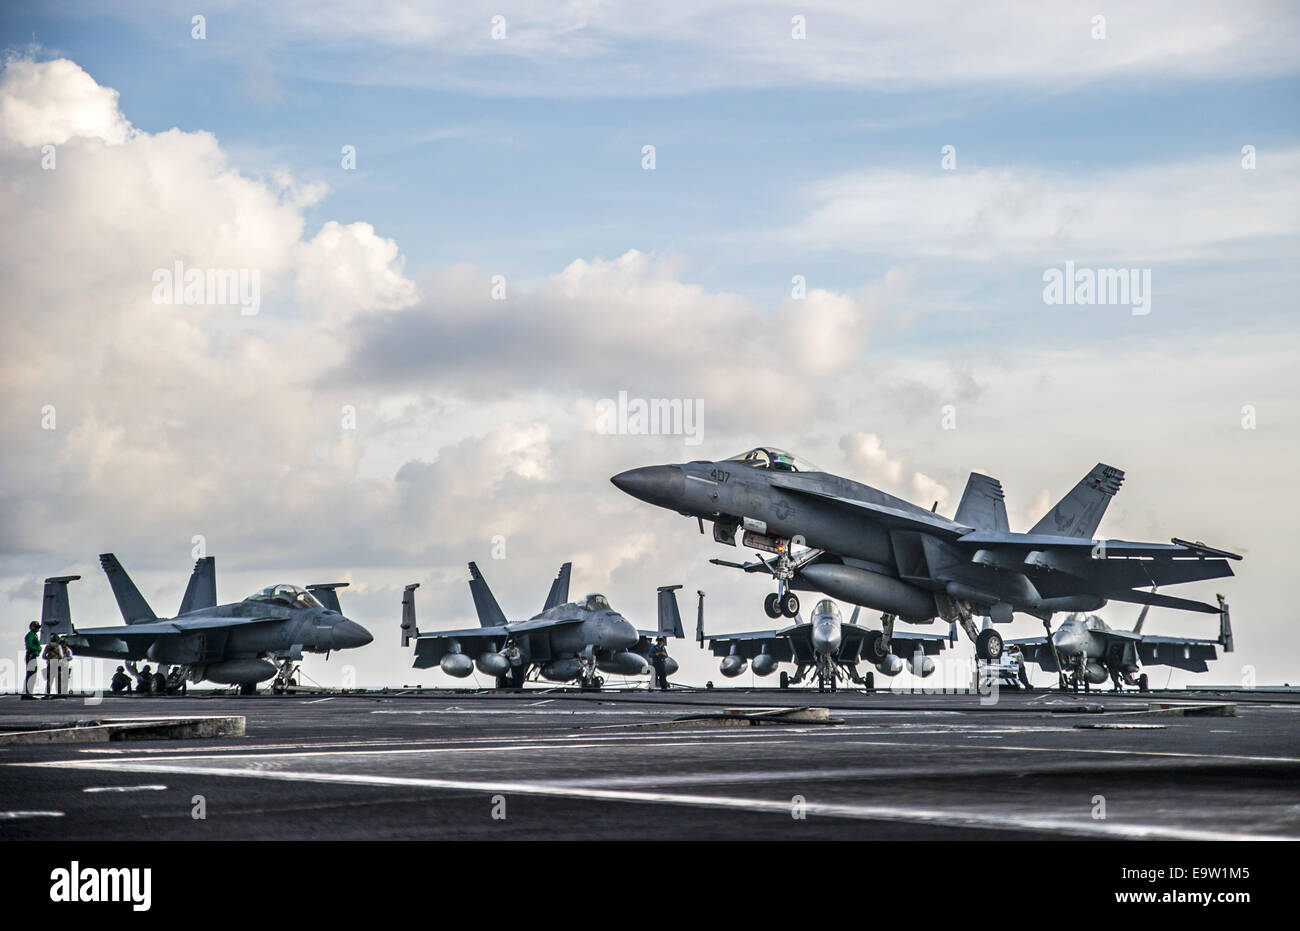 A U.S. Navy F/A-18E Super Hornet aircraft assigned to Strike Fighter Squadron (VFA) 195 prepares to make an arrested Stock Photo